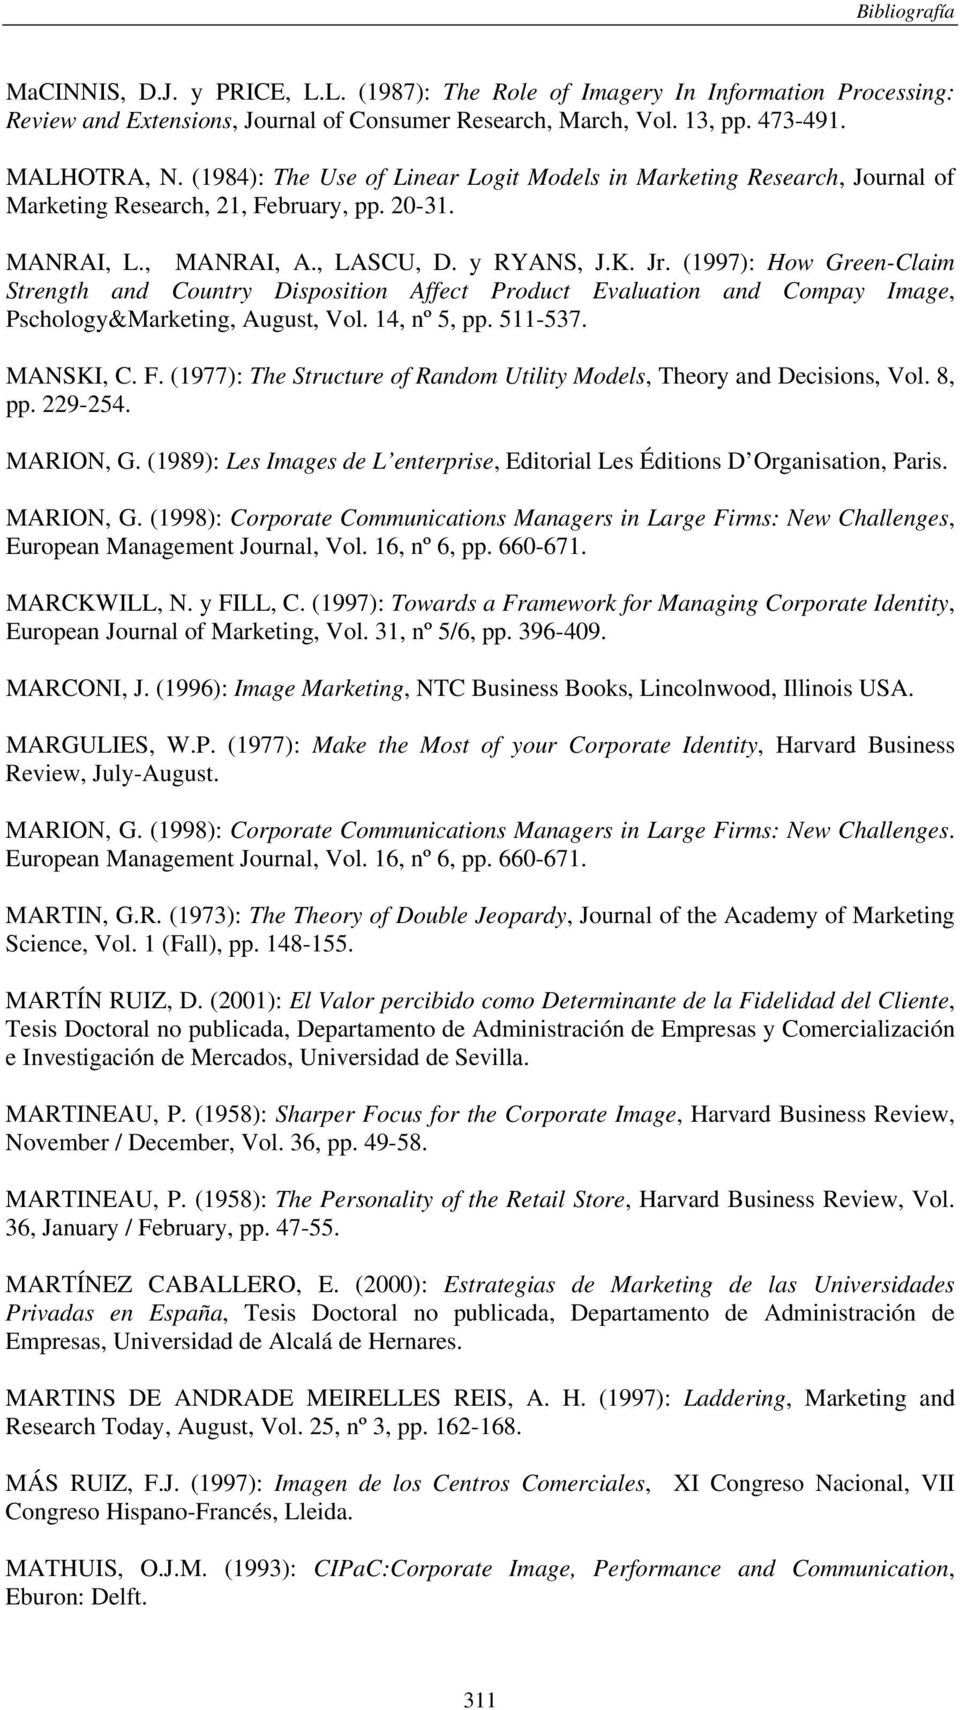 (1997): How Green-Claim Strength and Country Disposition Affect Product Evaluation and Compay Image, Pschology&Marketing, August, Vol. 14, nº 5, pp. 511-537. MANSKI, C. F.